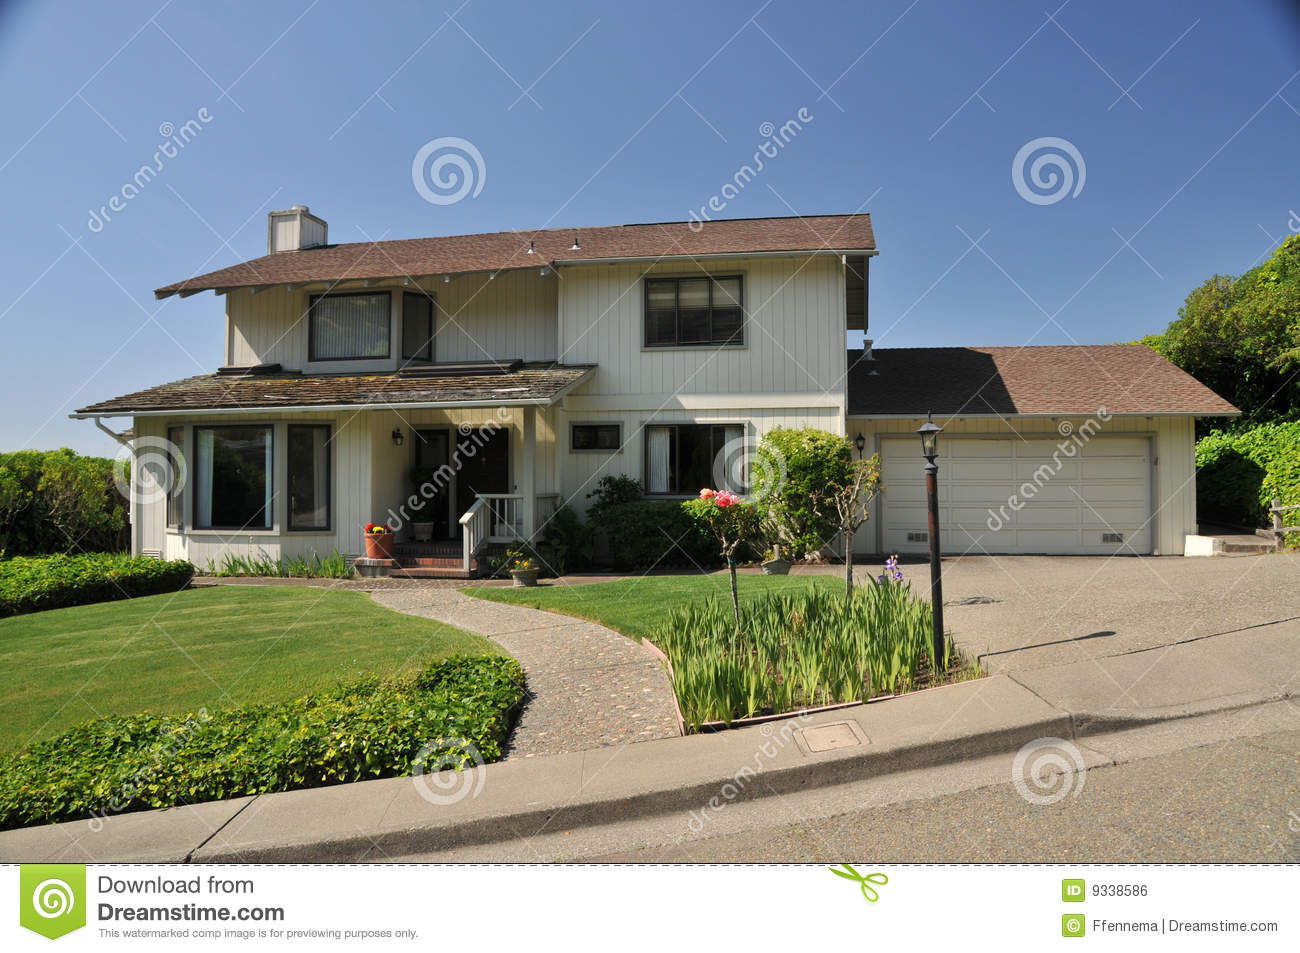 Two Story House With Walkway To Front Stock Photo Image 9338586